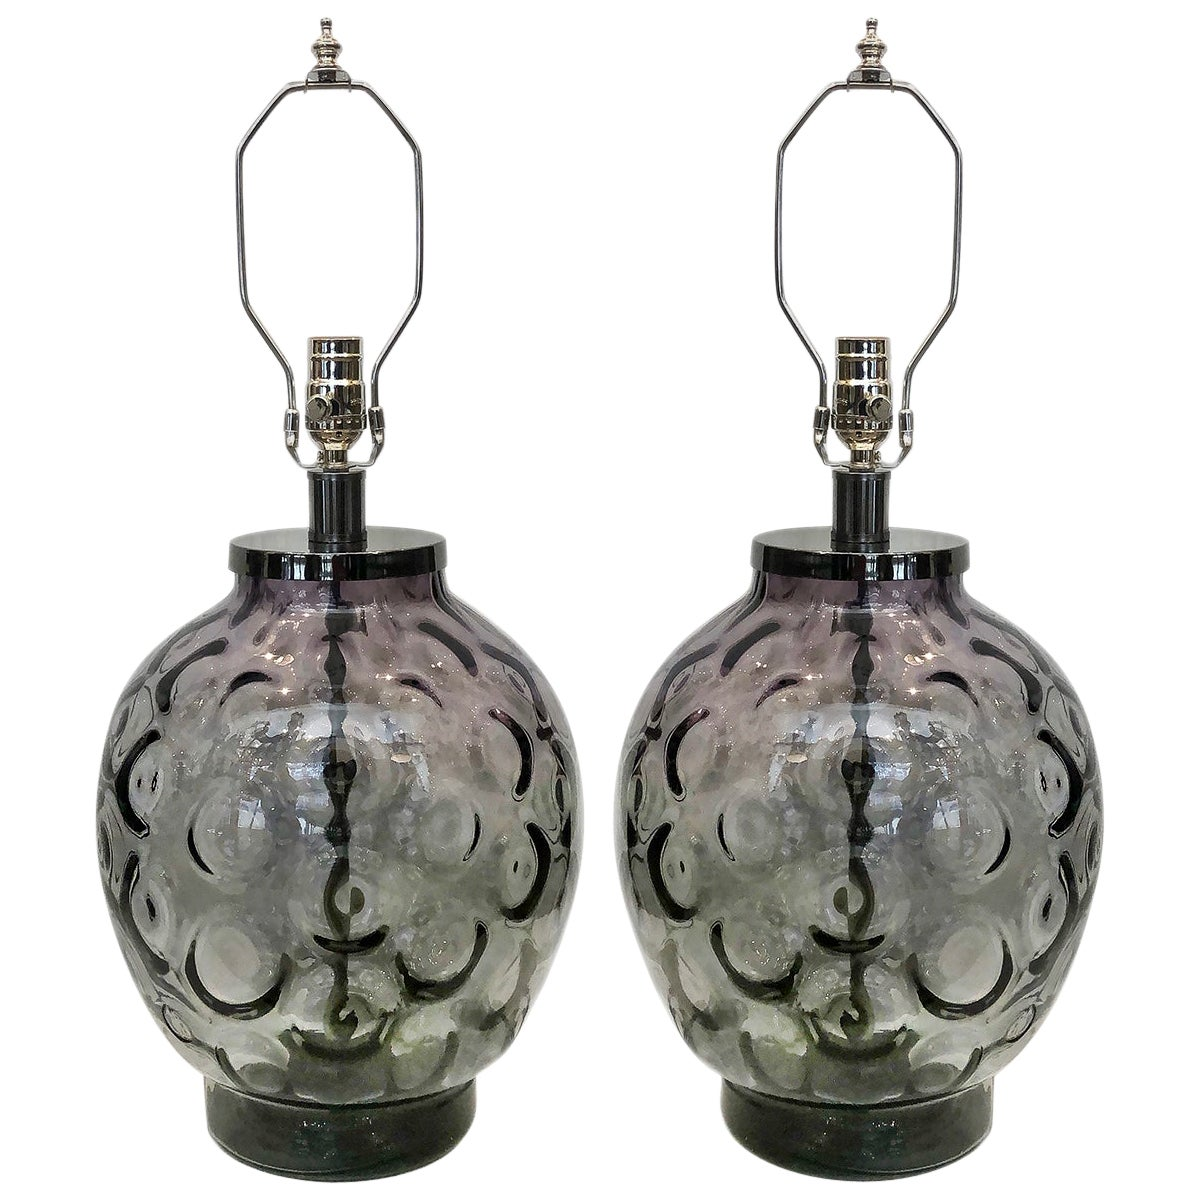 Pair of Midcentury Italian Glass Table Lamps